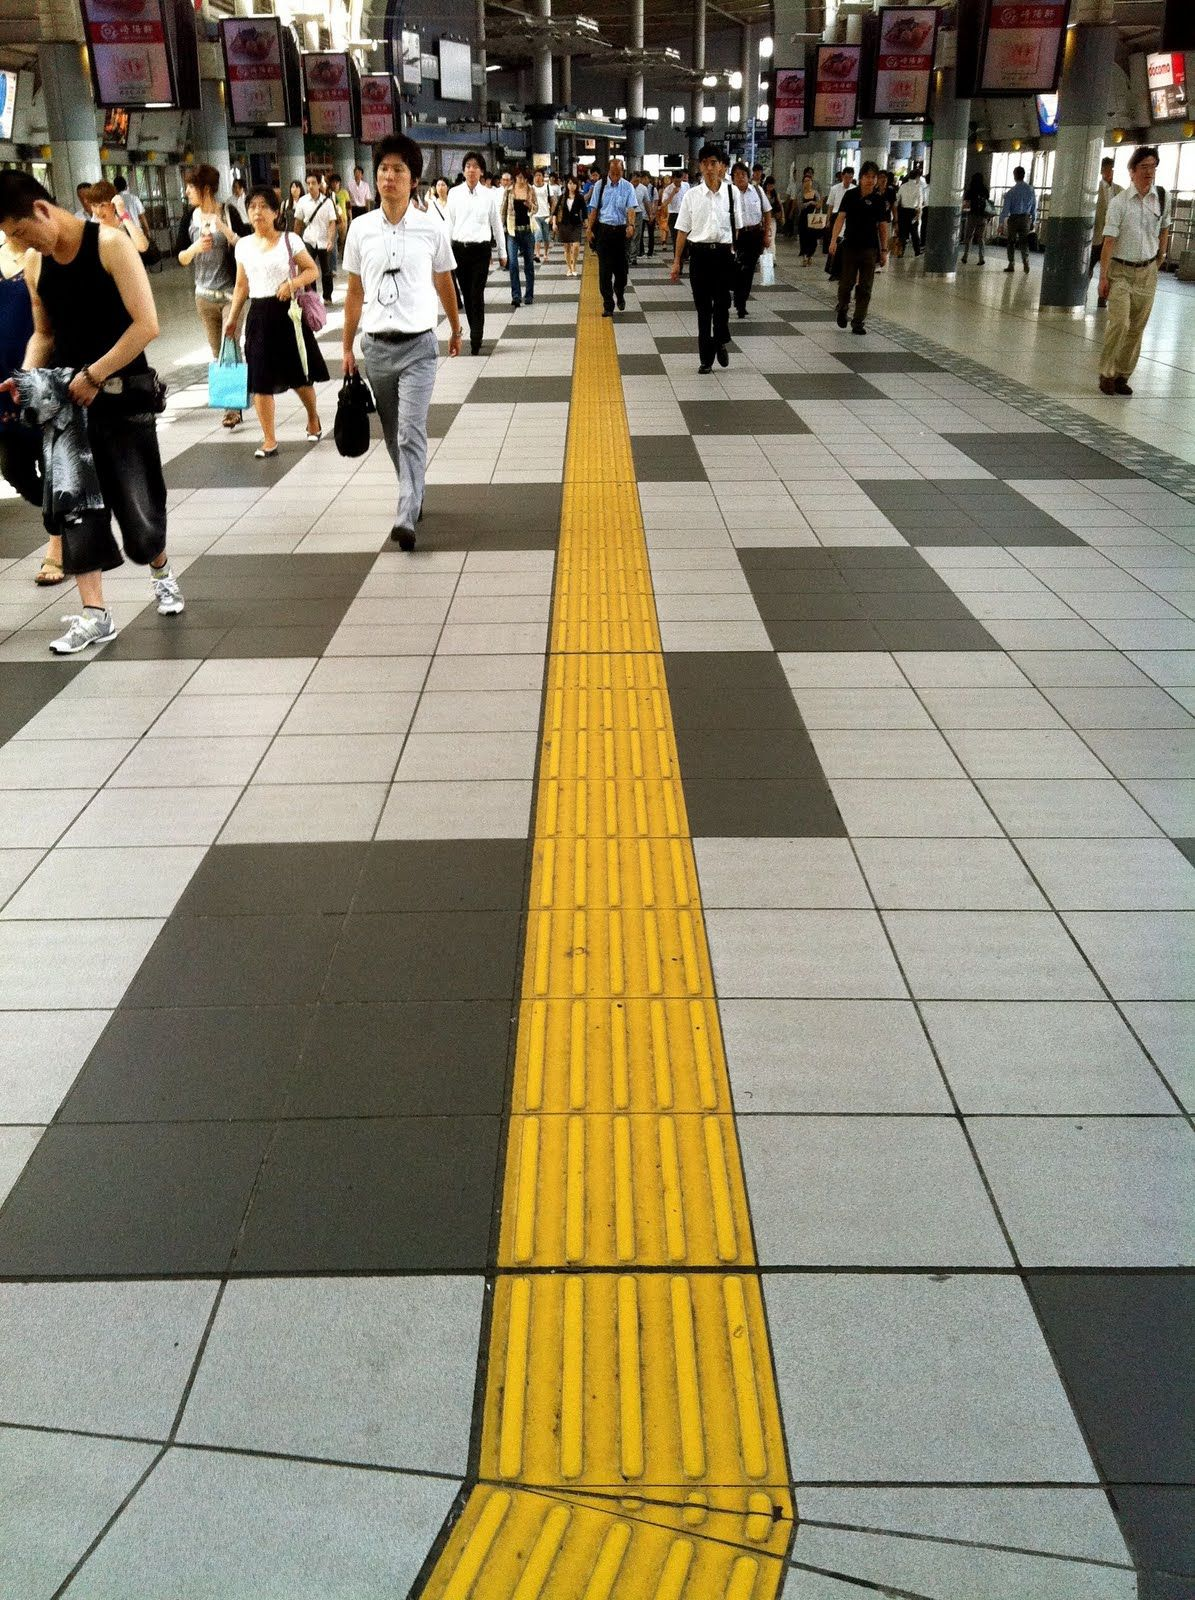 Tactile paving for the visually impaired this acts as a network tactile paving for the visually impaired this acts as a network of guiding pavement dailygadgetfo Image collections